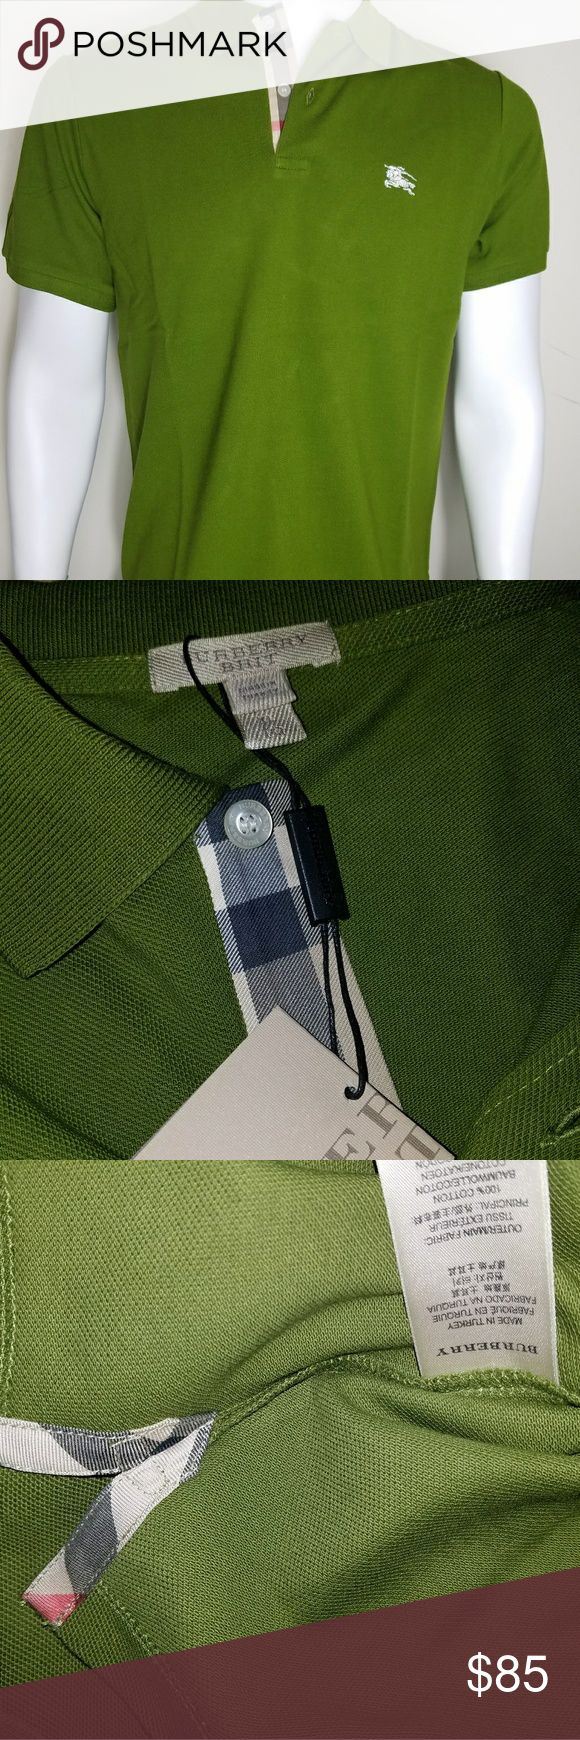 """Burberry brit men's racing green check polo shirt Burberry brit men's racing green nova  check placket  polo shirt SMALL ARMPIT TO ARMPIT:19""""(INCHES),TOP OF THE SHOULDER TO BOTTOM HEM:27.5""""(INCHES), ARMPIT TO END OF SLEEVE:3.5""""(INCHES) MEDIUM ARMPIT TO ARMPIT:20""""(INCHES),TOP OF THE SHOULDER TO BOTTOM HEM:28.5""""(INCHES), ARMPIT TO END OF SLEEVE:3.5""""(INCHES) XL ARMPIT TO ARMPIT:22""""(INCHES),TOP OF THE SHOULDER TO BOTTOM HEM:29""""(INCHES), ARMPIT TO END OF SLEEVE:3.5""""(INCHES) XXL ARMPIT TO…"""